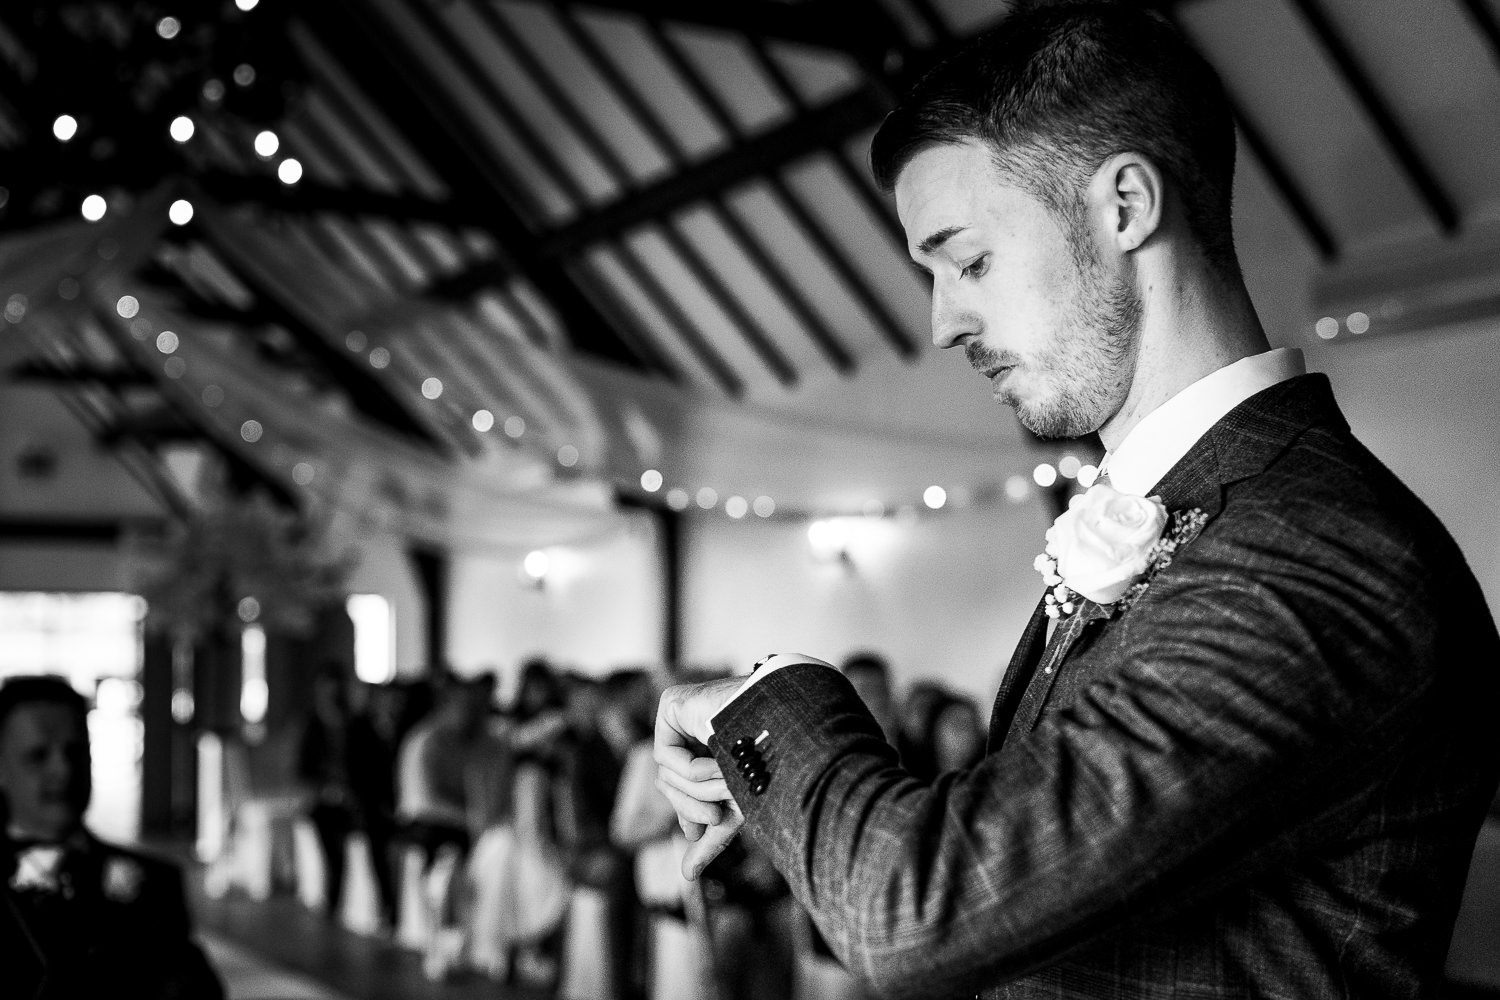 Groom checking the time